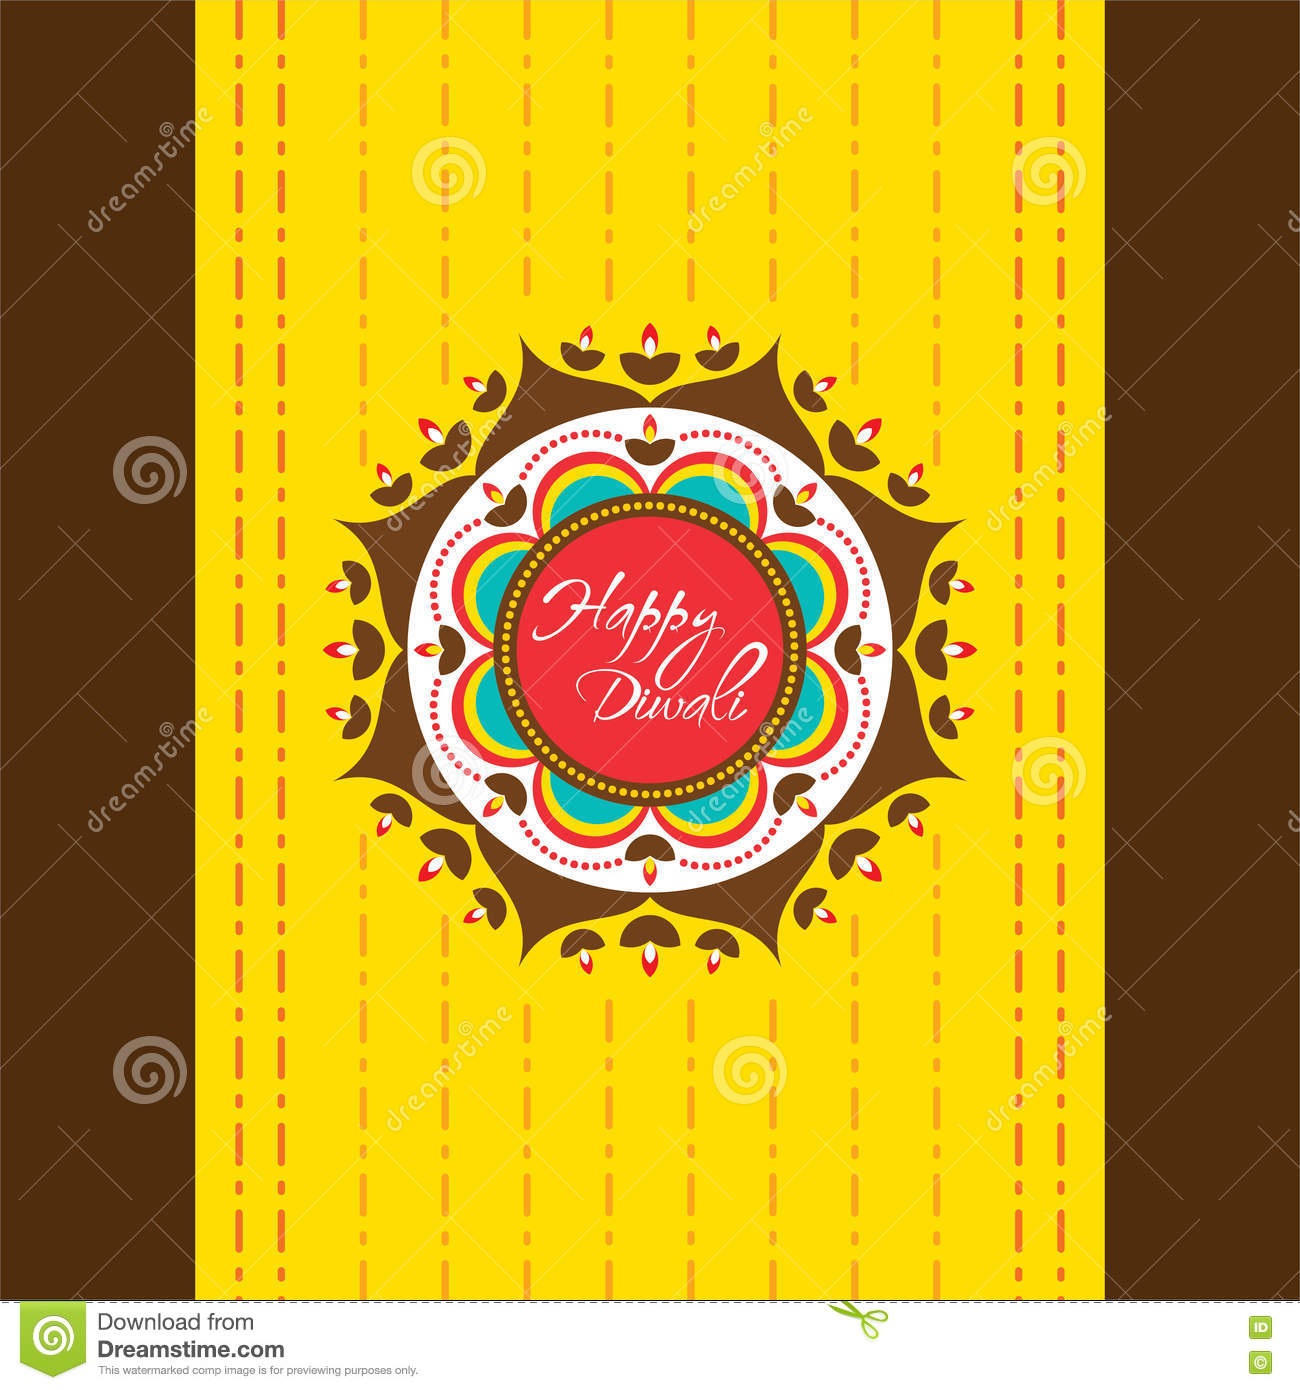 Happy diwali greeting card design stock vector illustration of happy diwali greeting card design kristyandbryce Images